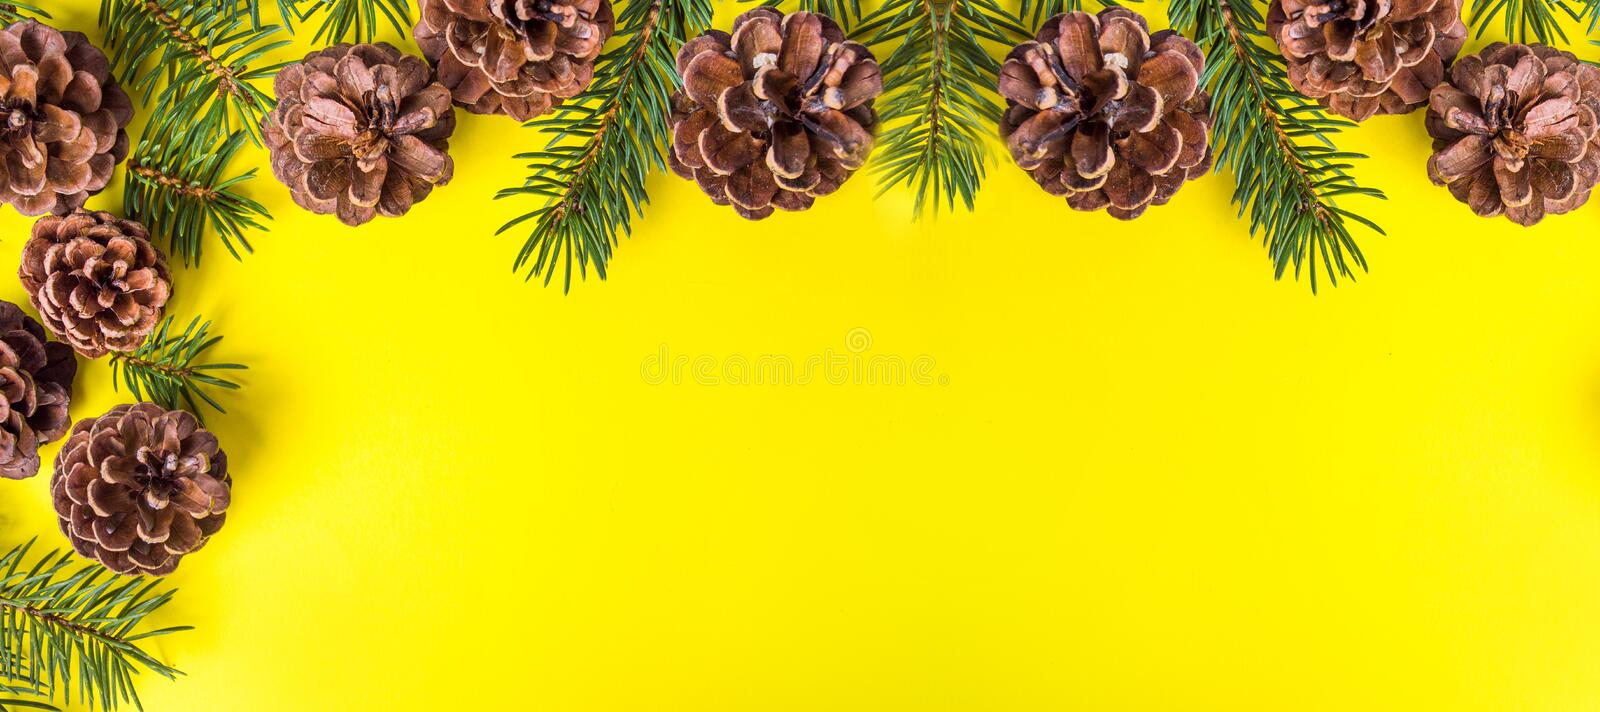 Pine cones on yellow background festive background stock images